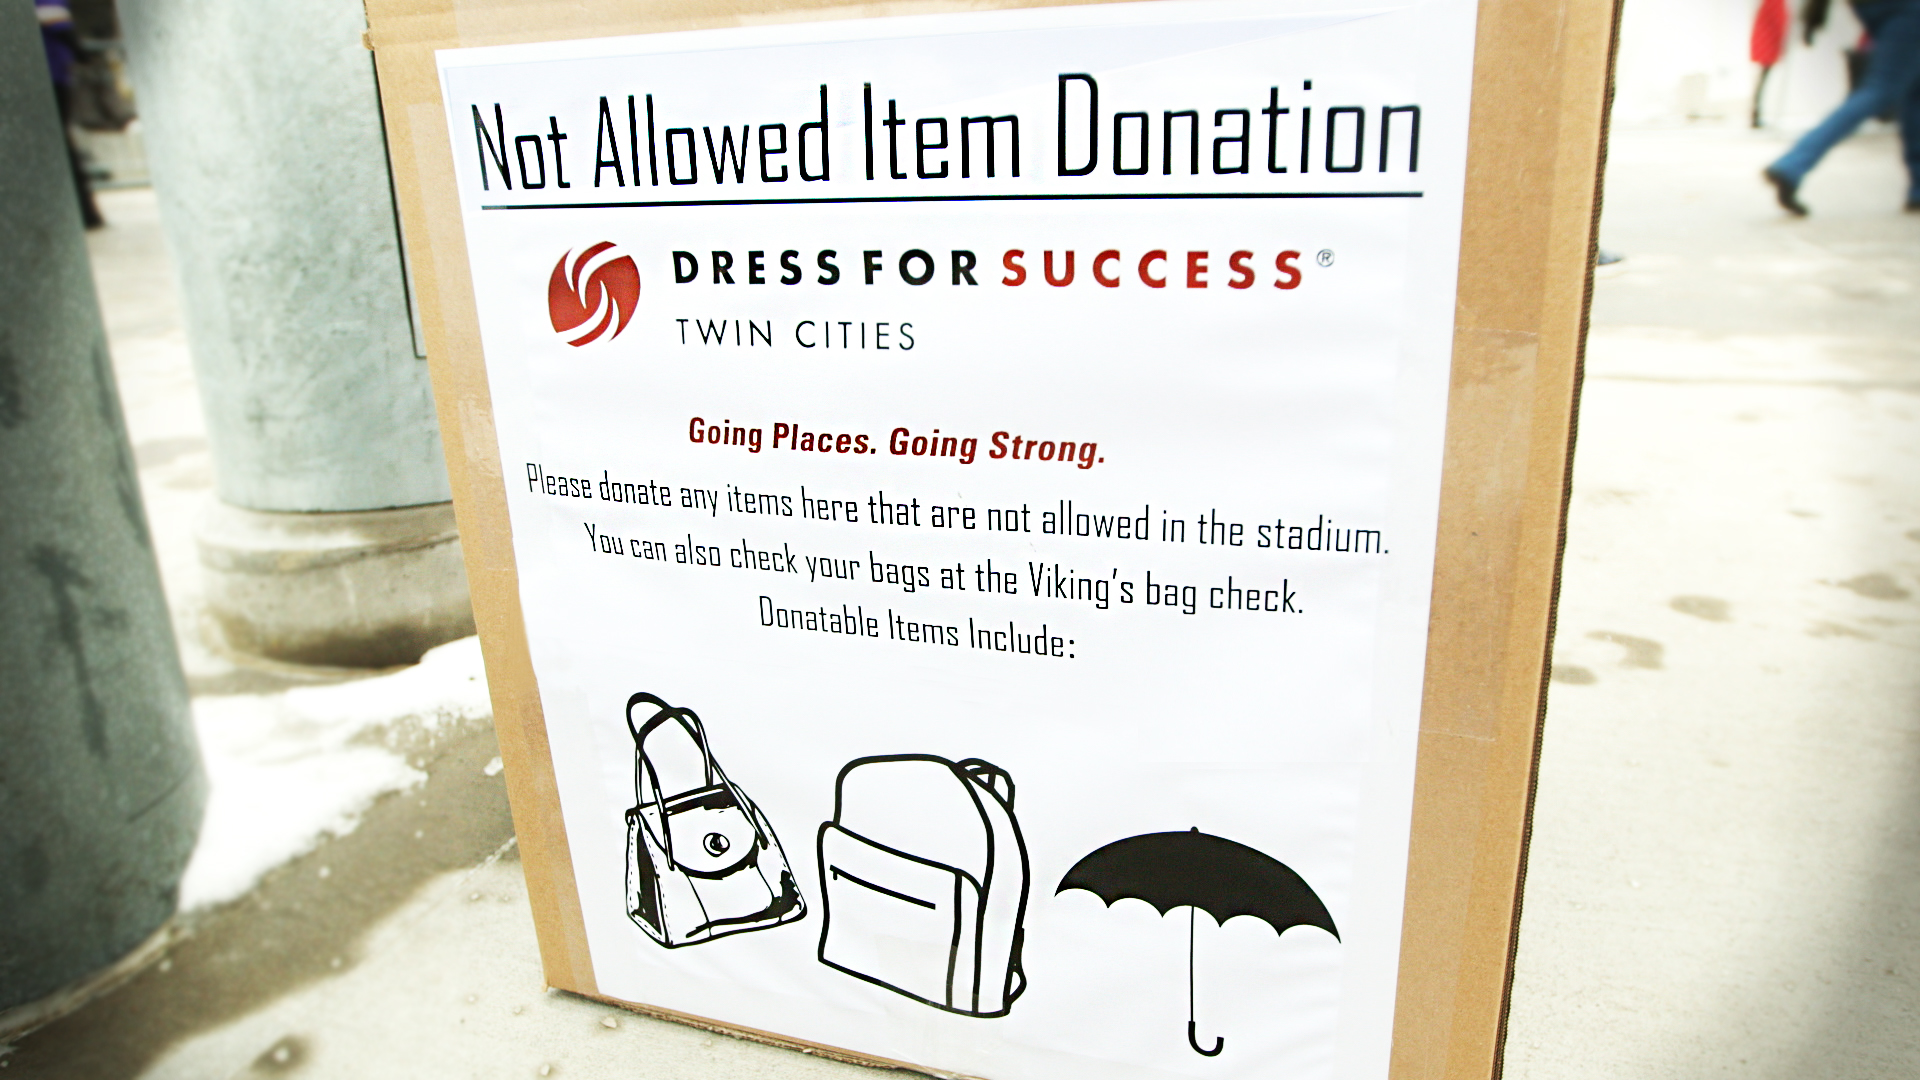 Fans will be encouraged to donate items that they're not allowed to bring into the stadium.